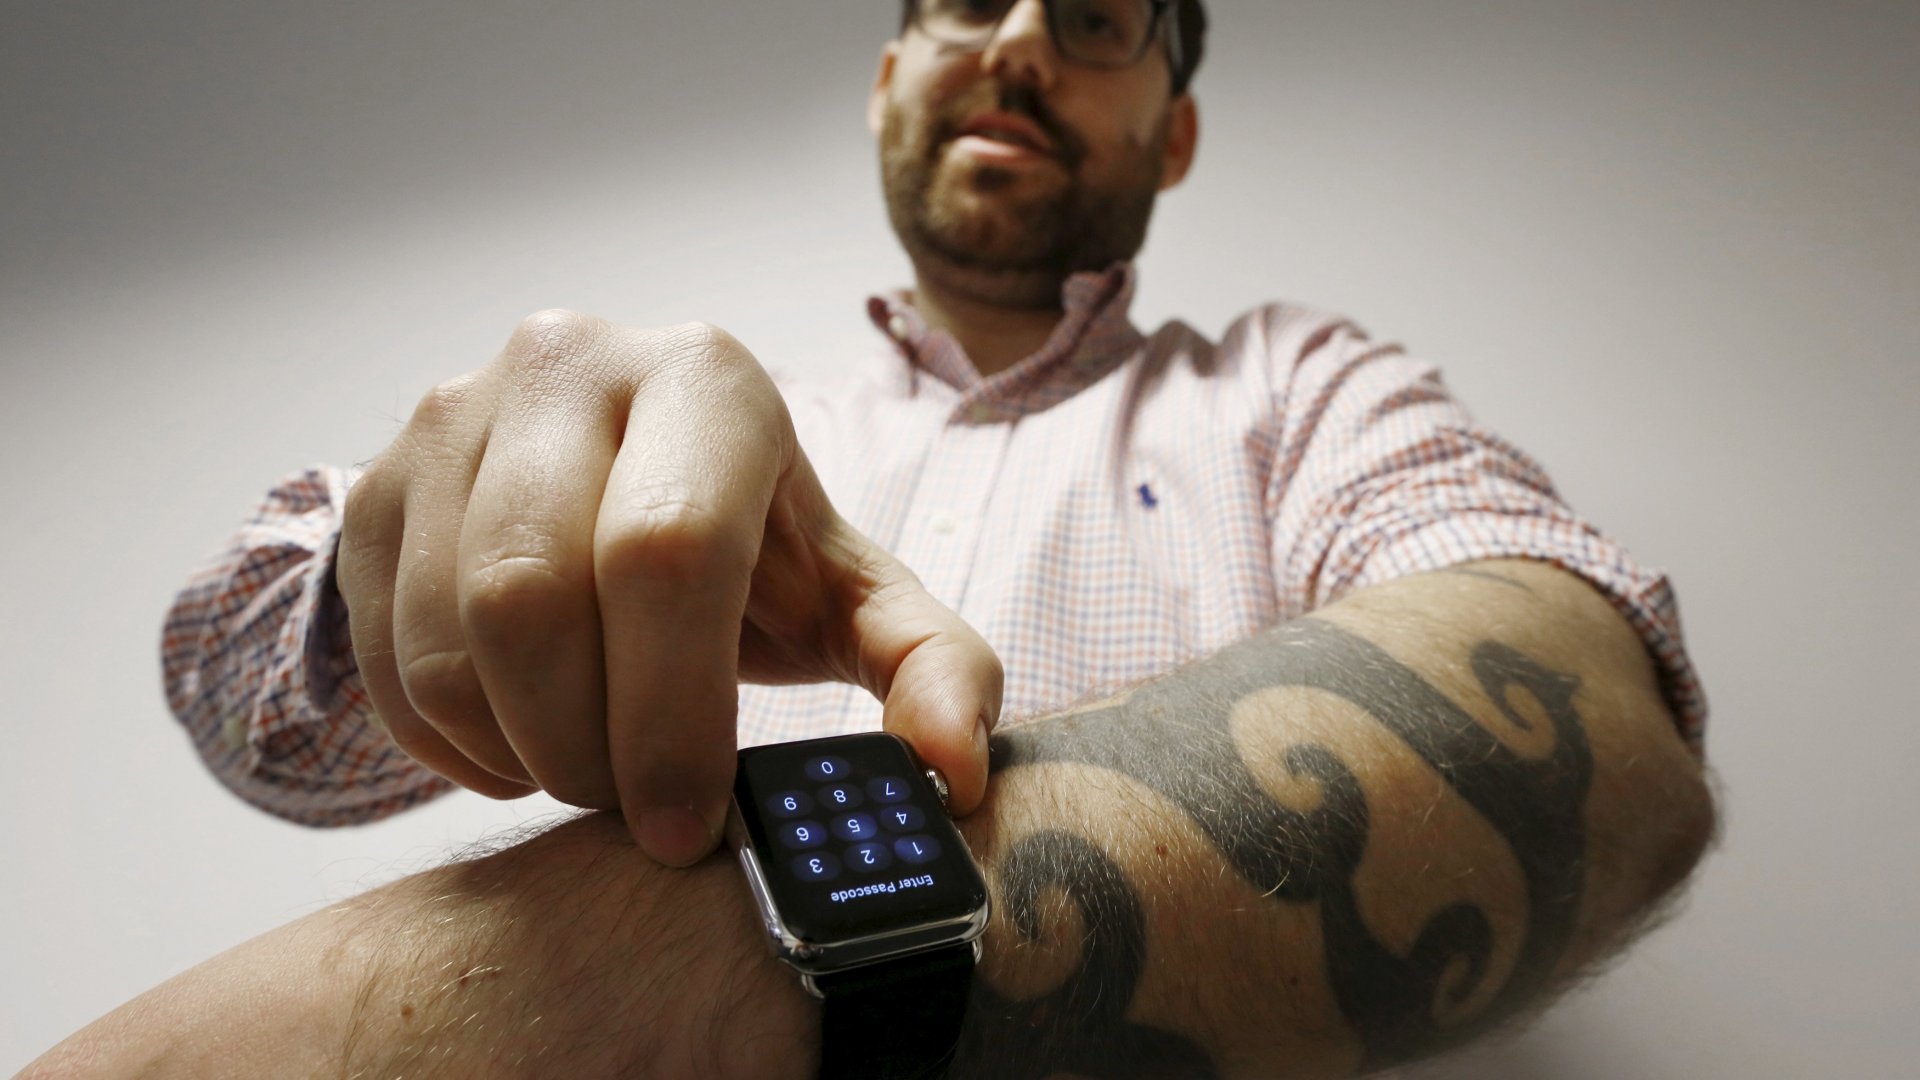 Reuters journalist Matt Siegel inputs his passcode onto his Apple Watch as his tattoos prevent the device's sensors from correctly detecting his skin, in Sydney, Australia, April 30, 2015.